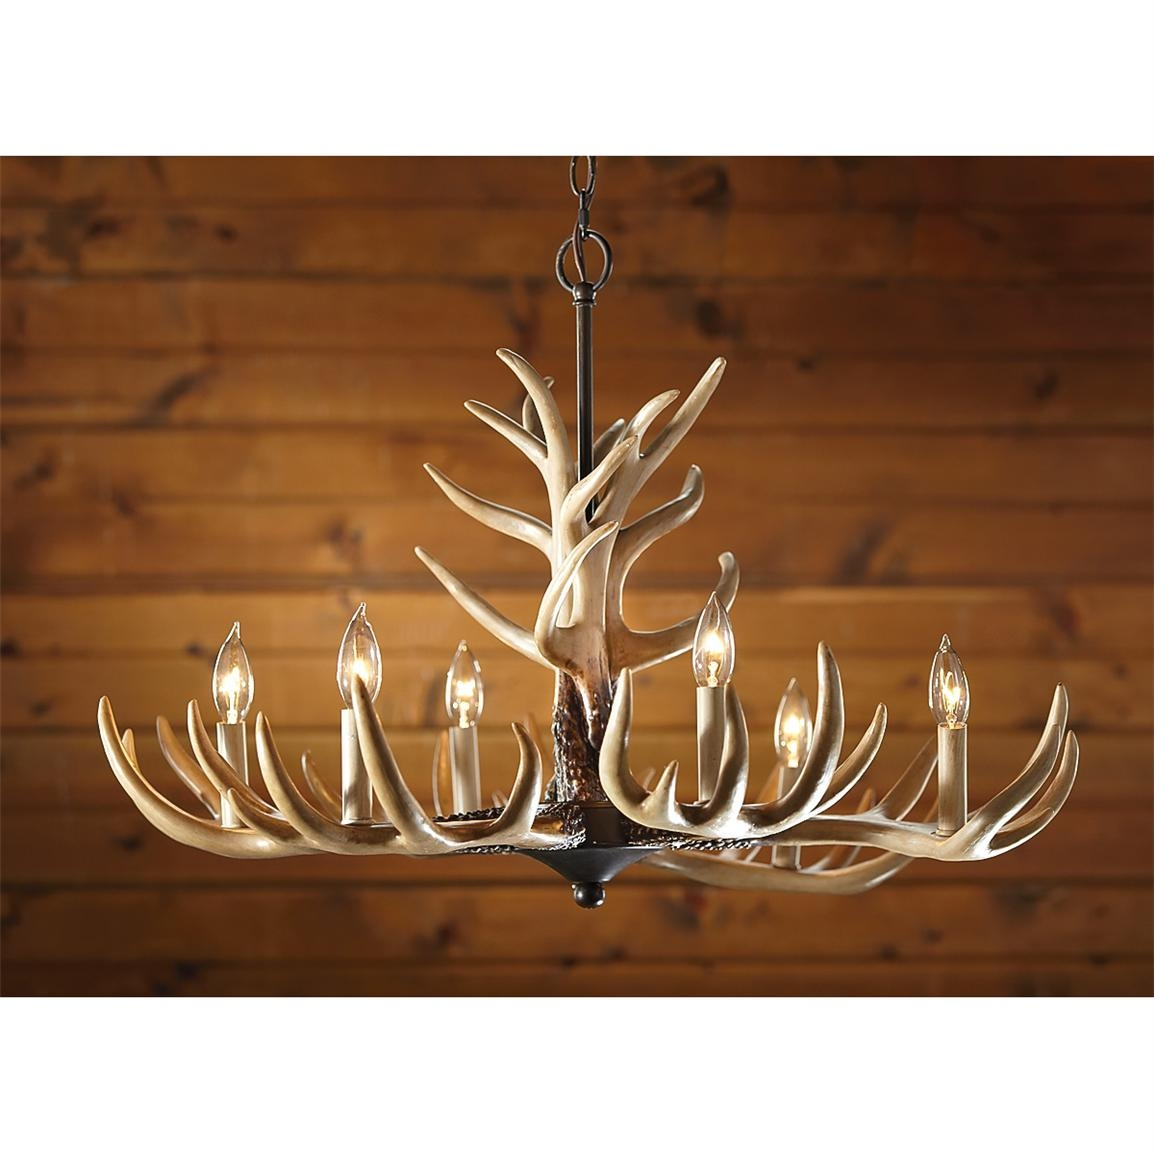 6 Light Antler Chandelier 210035 Lighting At Sportsmans Guide With Regard To Antler Chandelier (View 13 of 15)